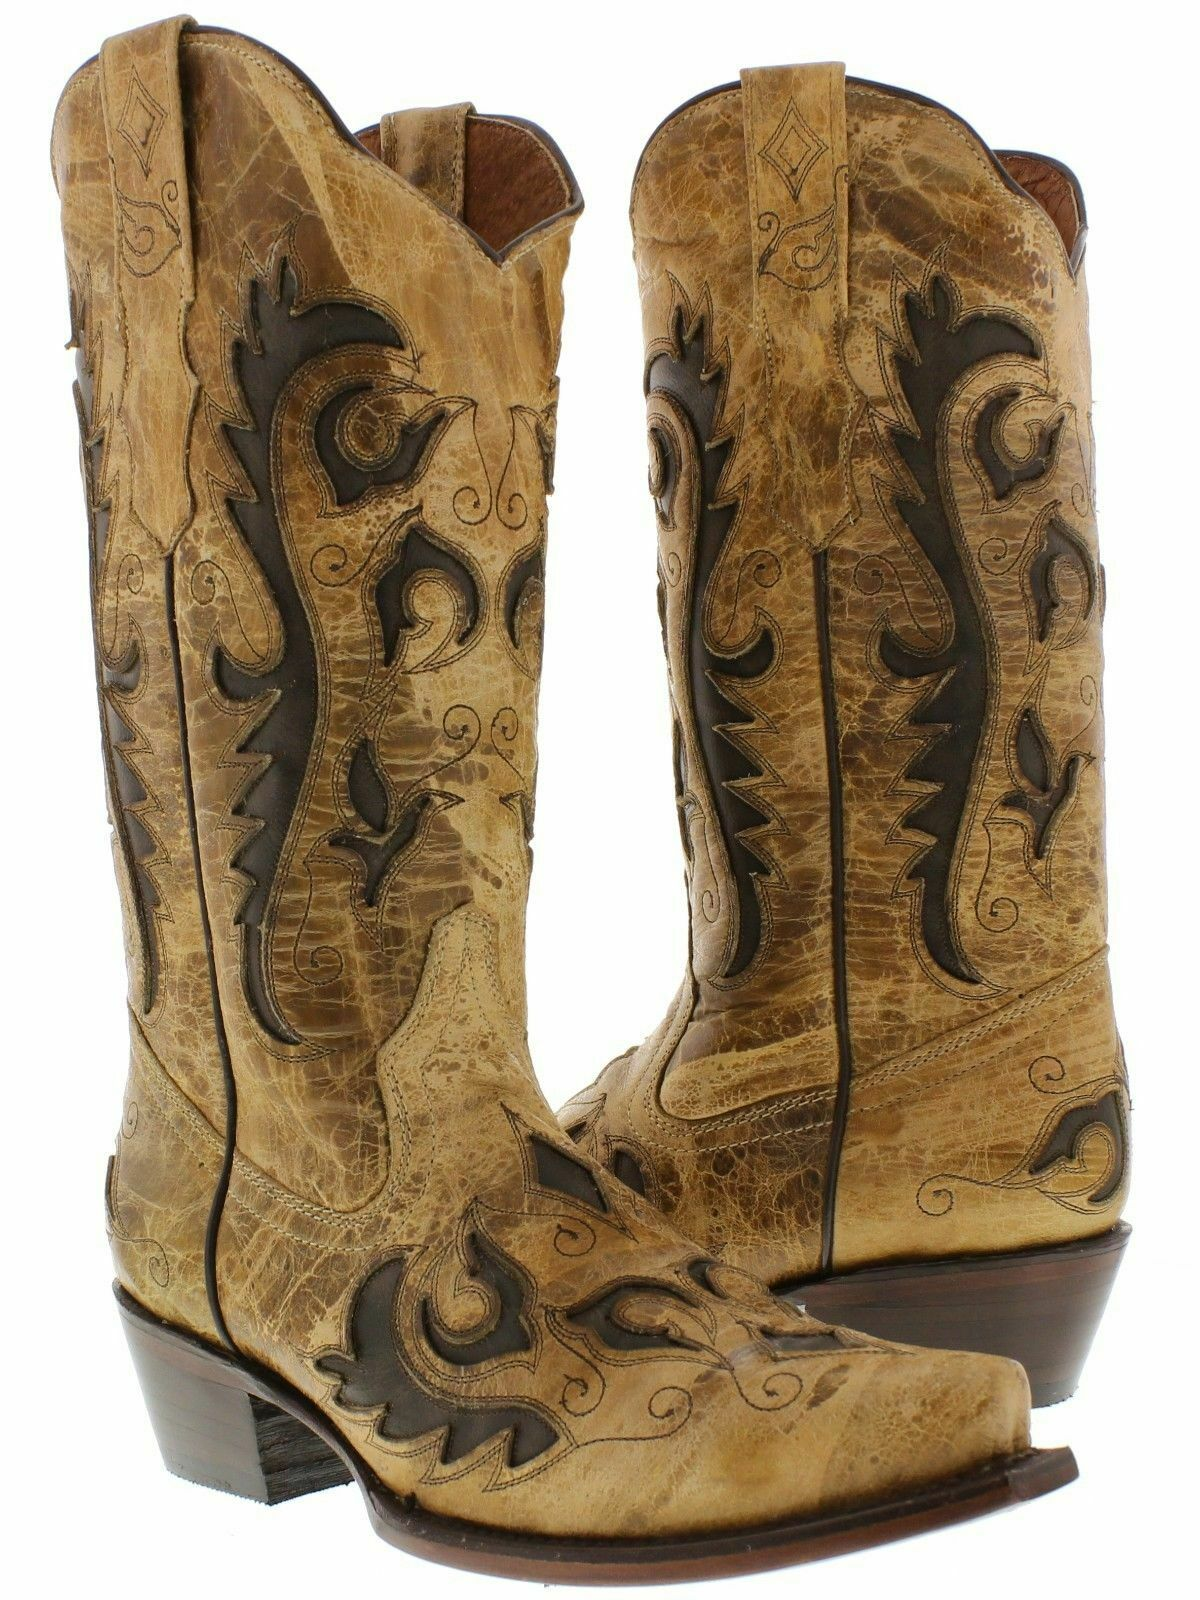 Femme Sable Inlay Western Cowgirl Bottes effet vieilli cuir Snip Toe